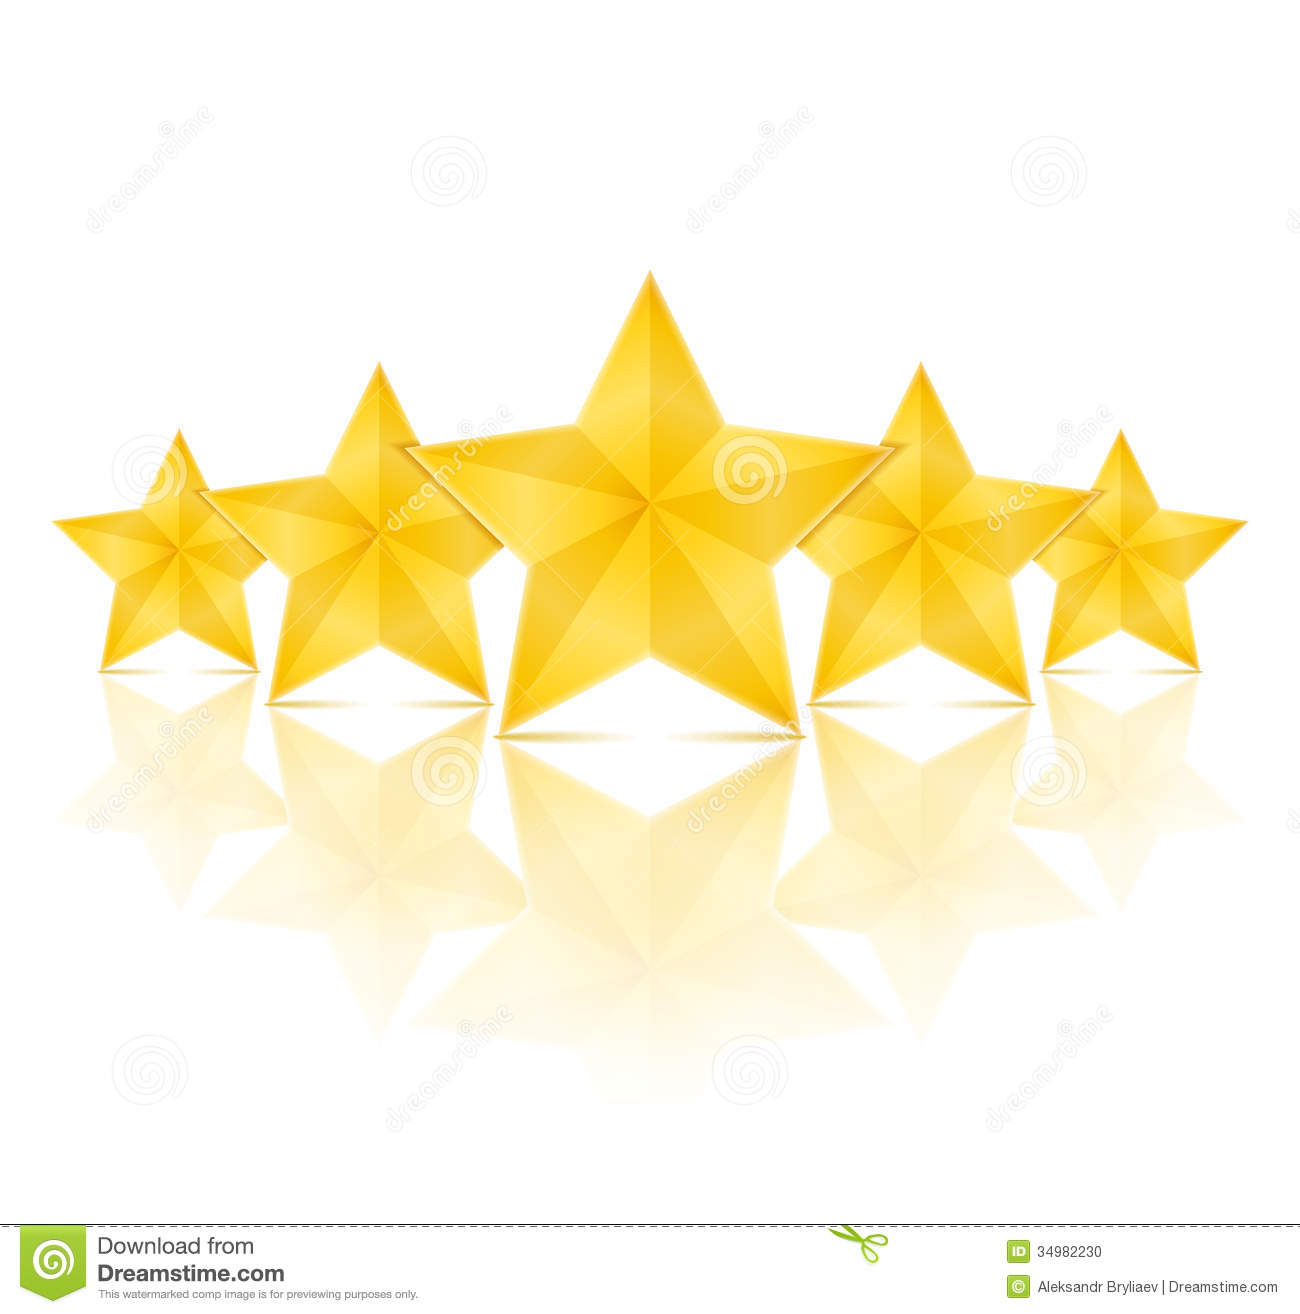 Five golden stars with reflection on white background.